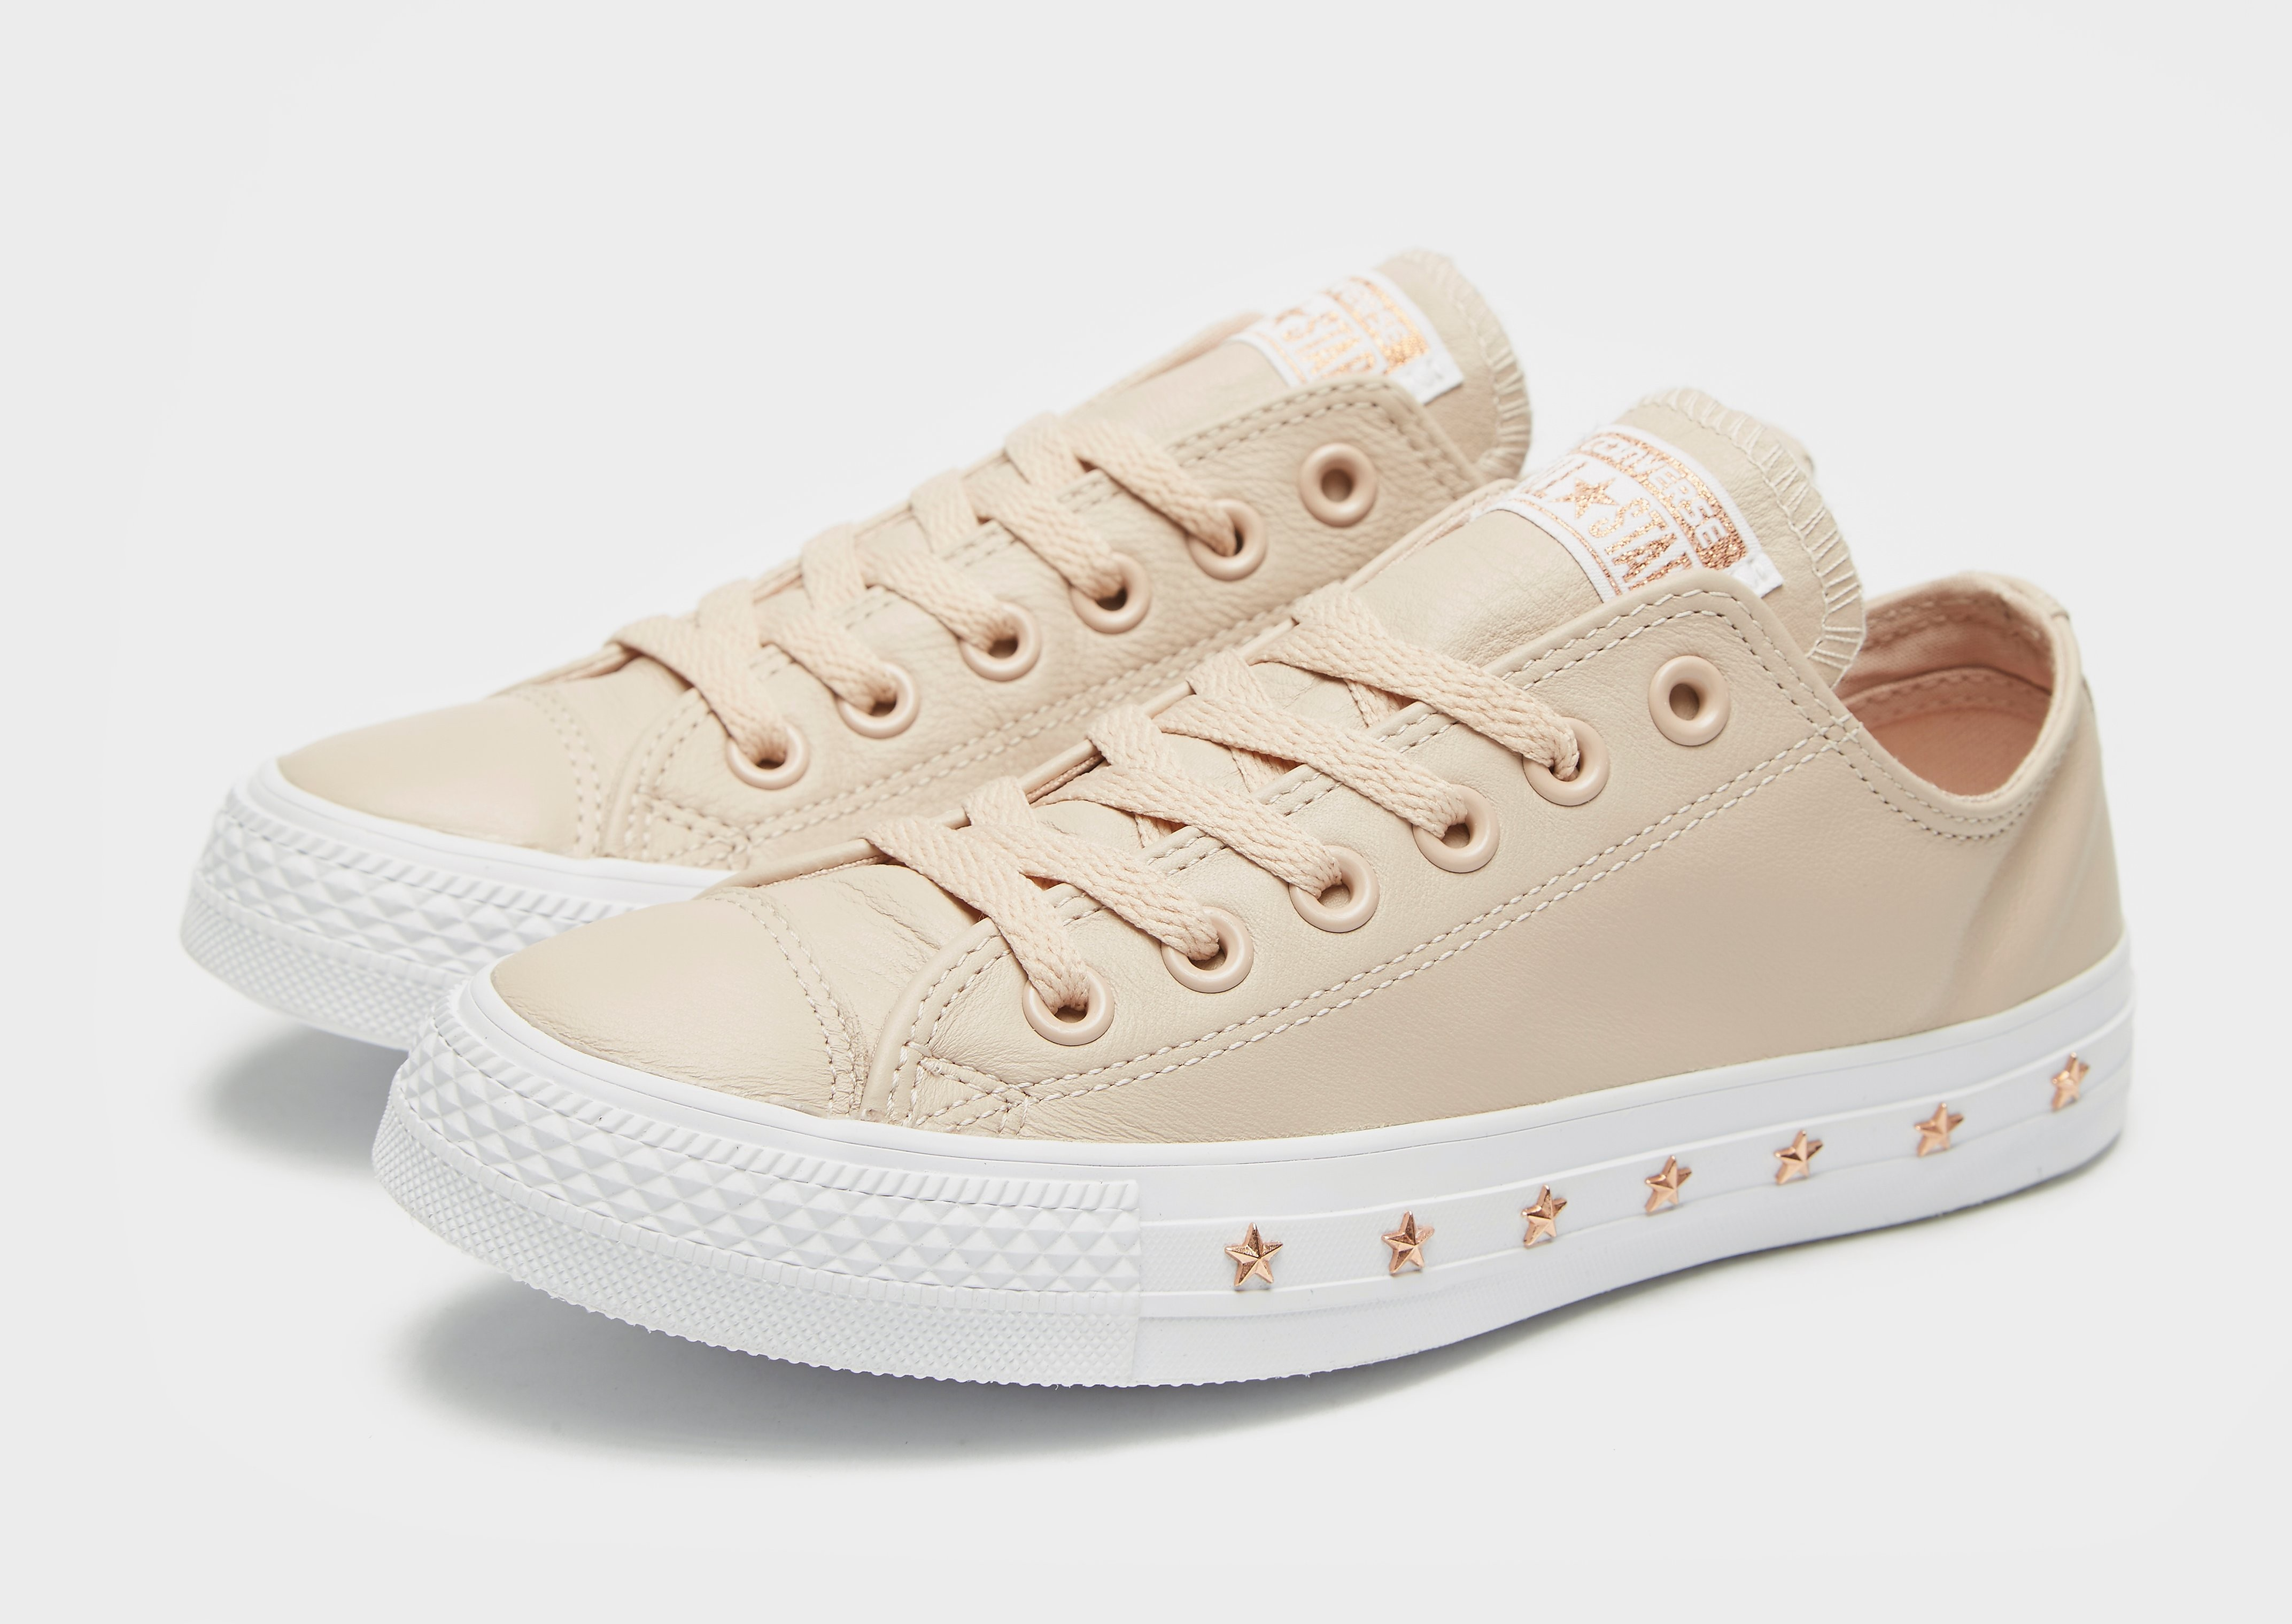 Converse All Star Ox Stud Women